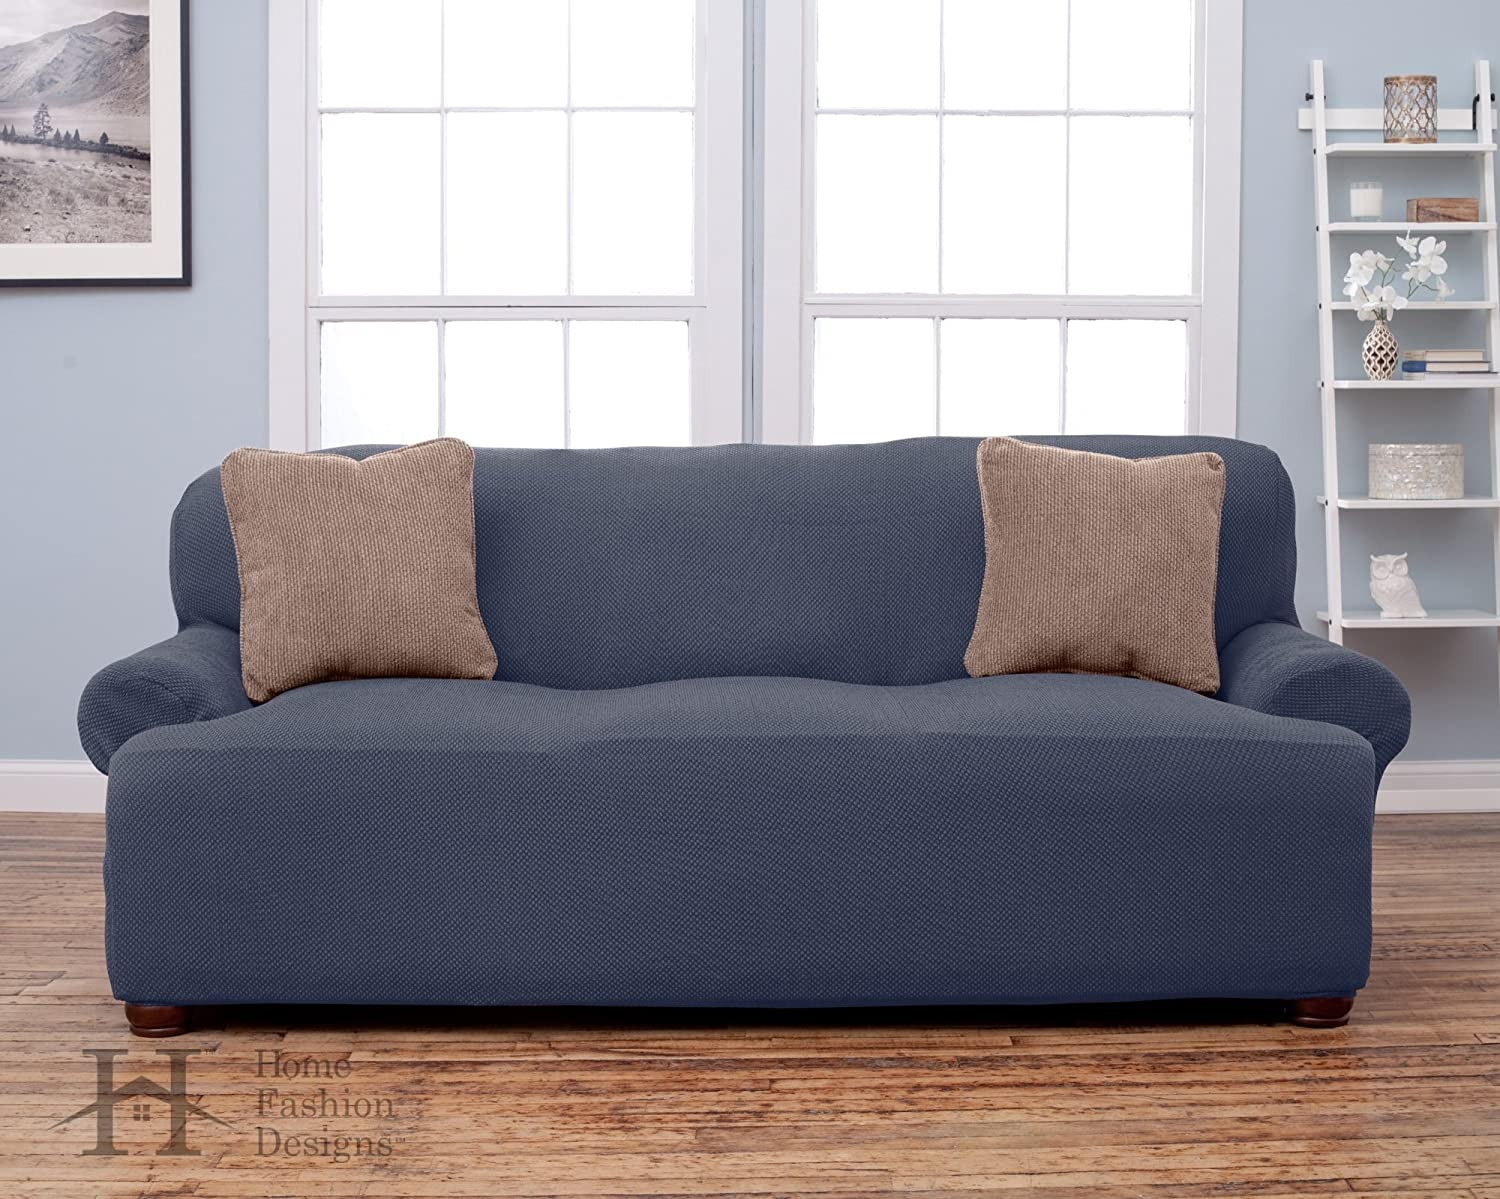 Form Fit, Slip Resistant, Stylish Furniture Shield / Protector Featuring  Lightweight Fabric. By Home Fashion Designs Brand. (Sofa, Grey): Home U0026  Kitchen